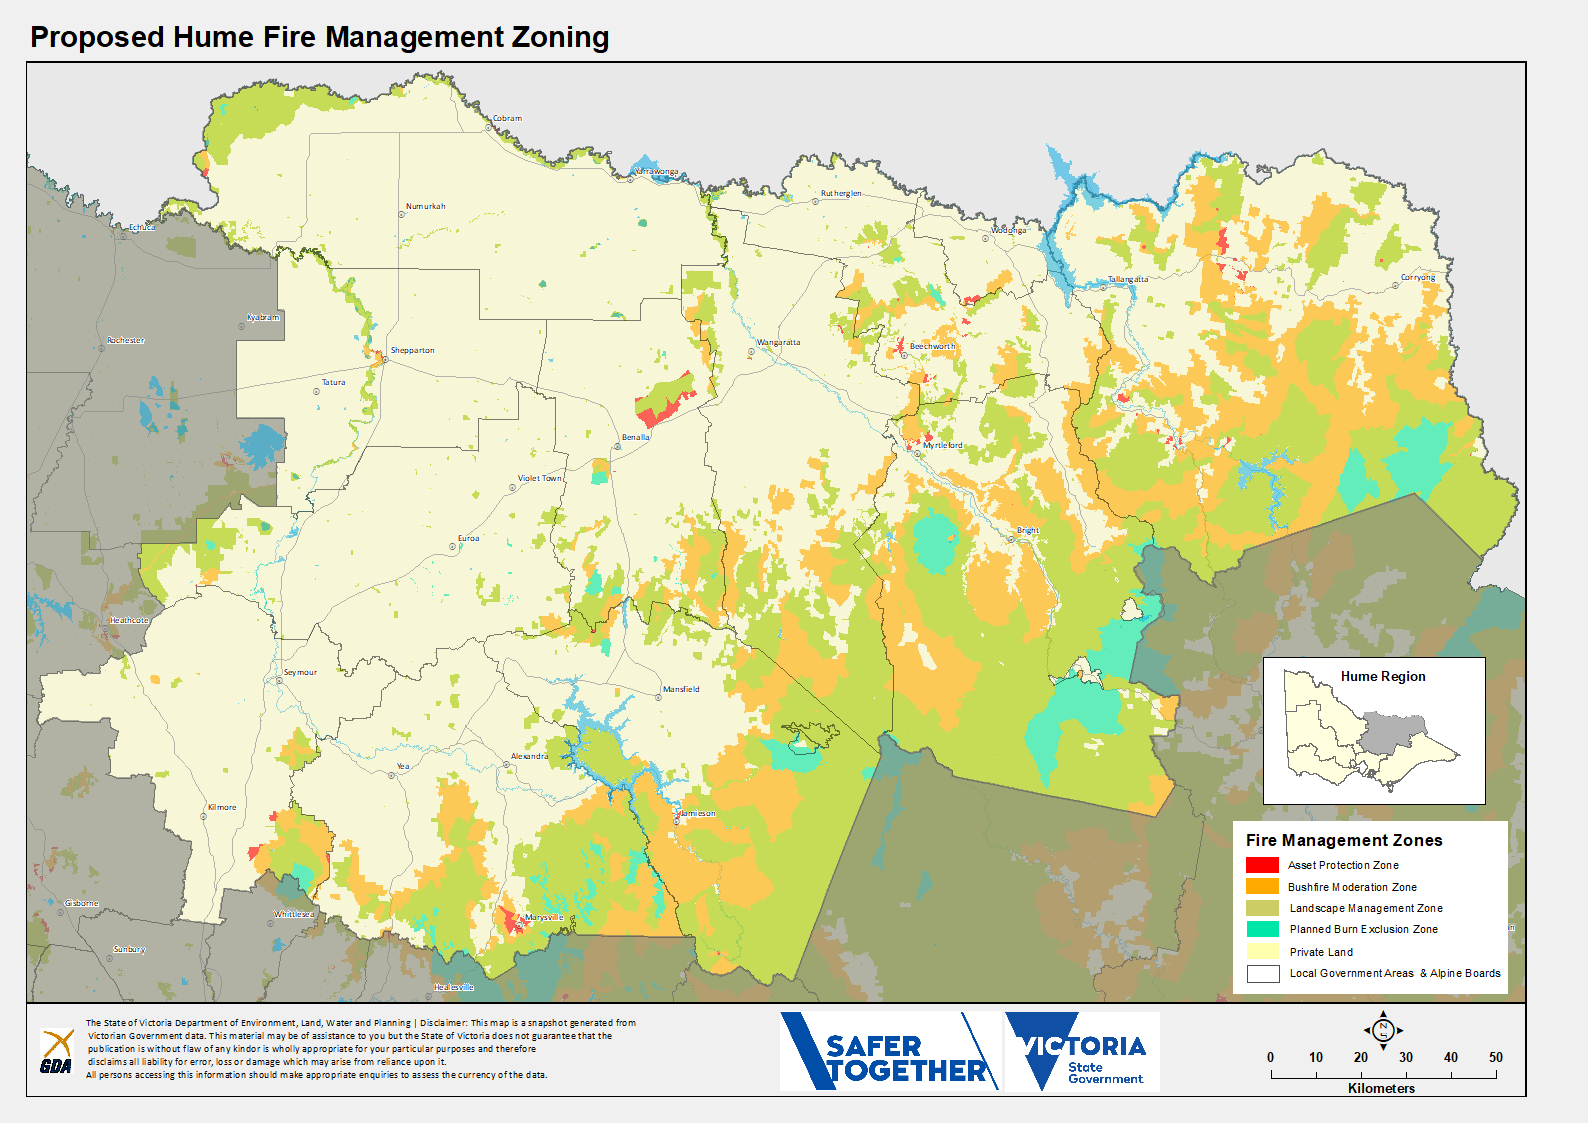 A map of the proposed Fire Management Zones in the Hume Region